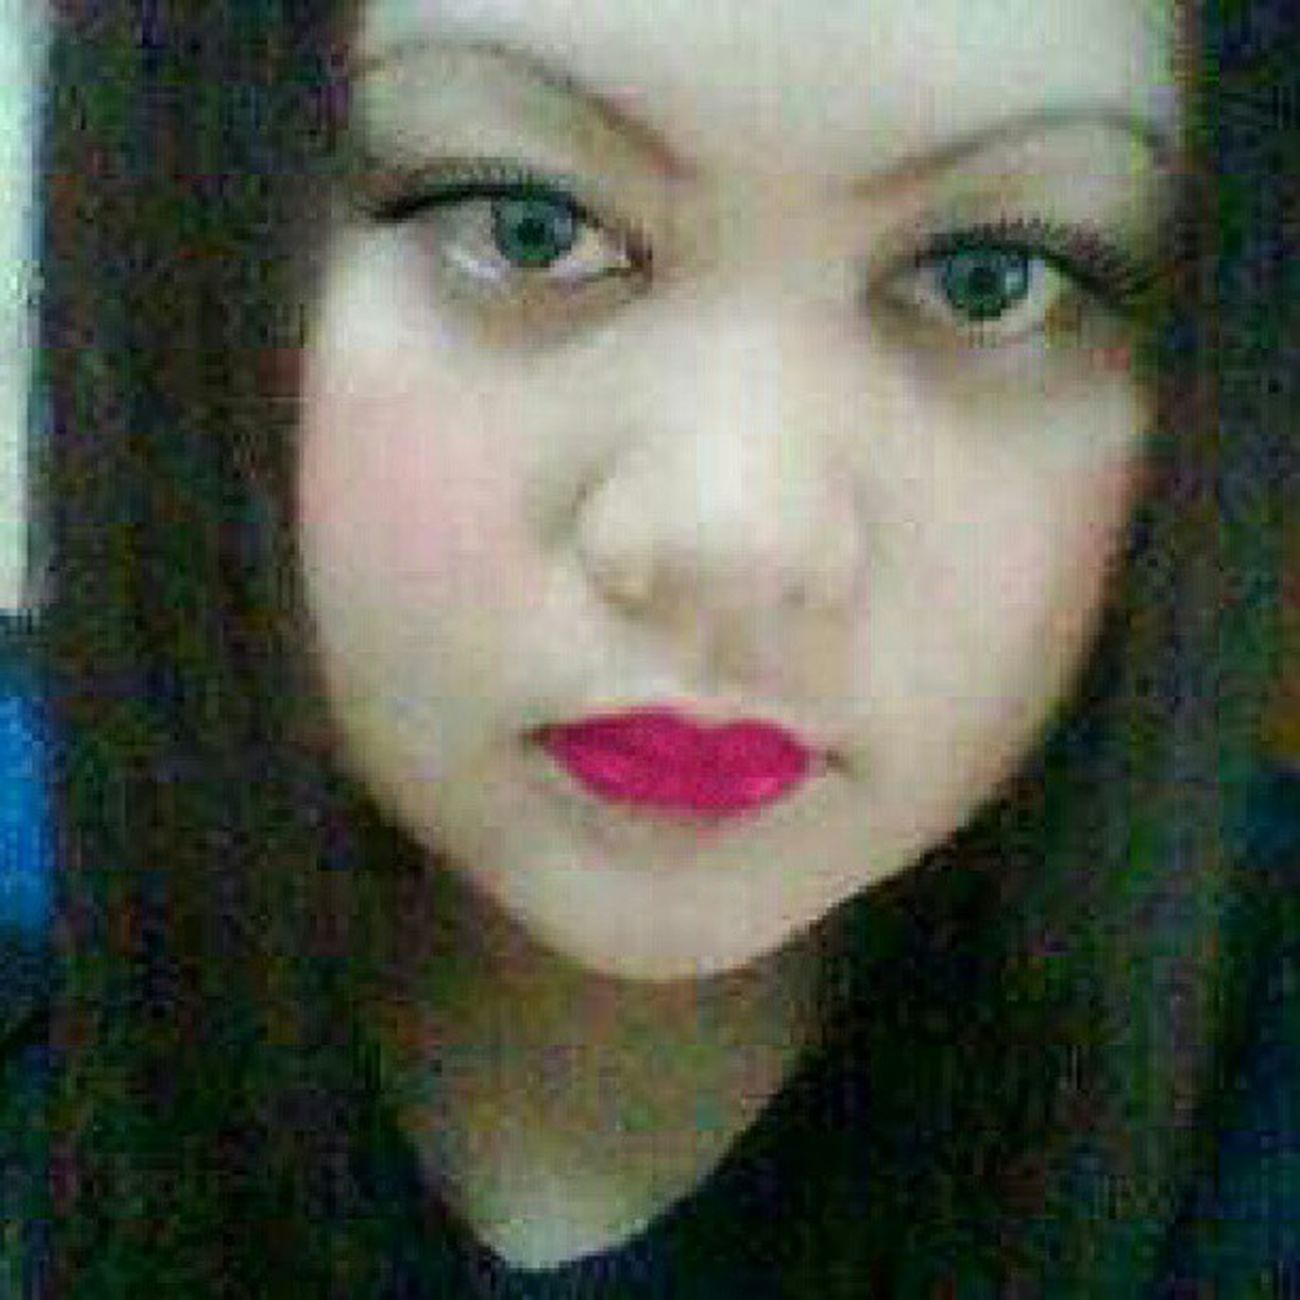 Love the lipstick to the max. Thanks Avonfashions for the lipstick. Lovin' it. ^_^